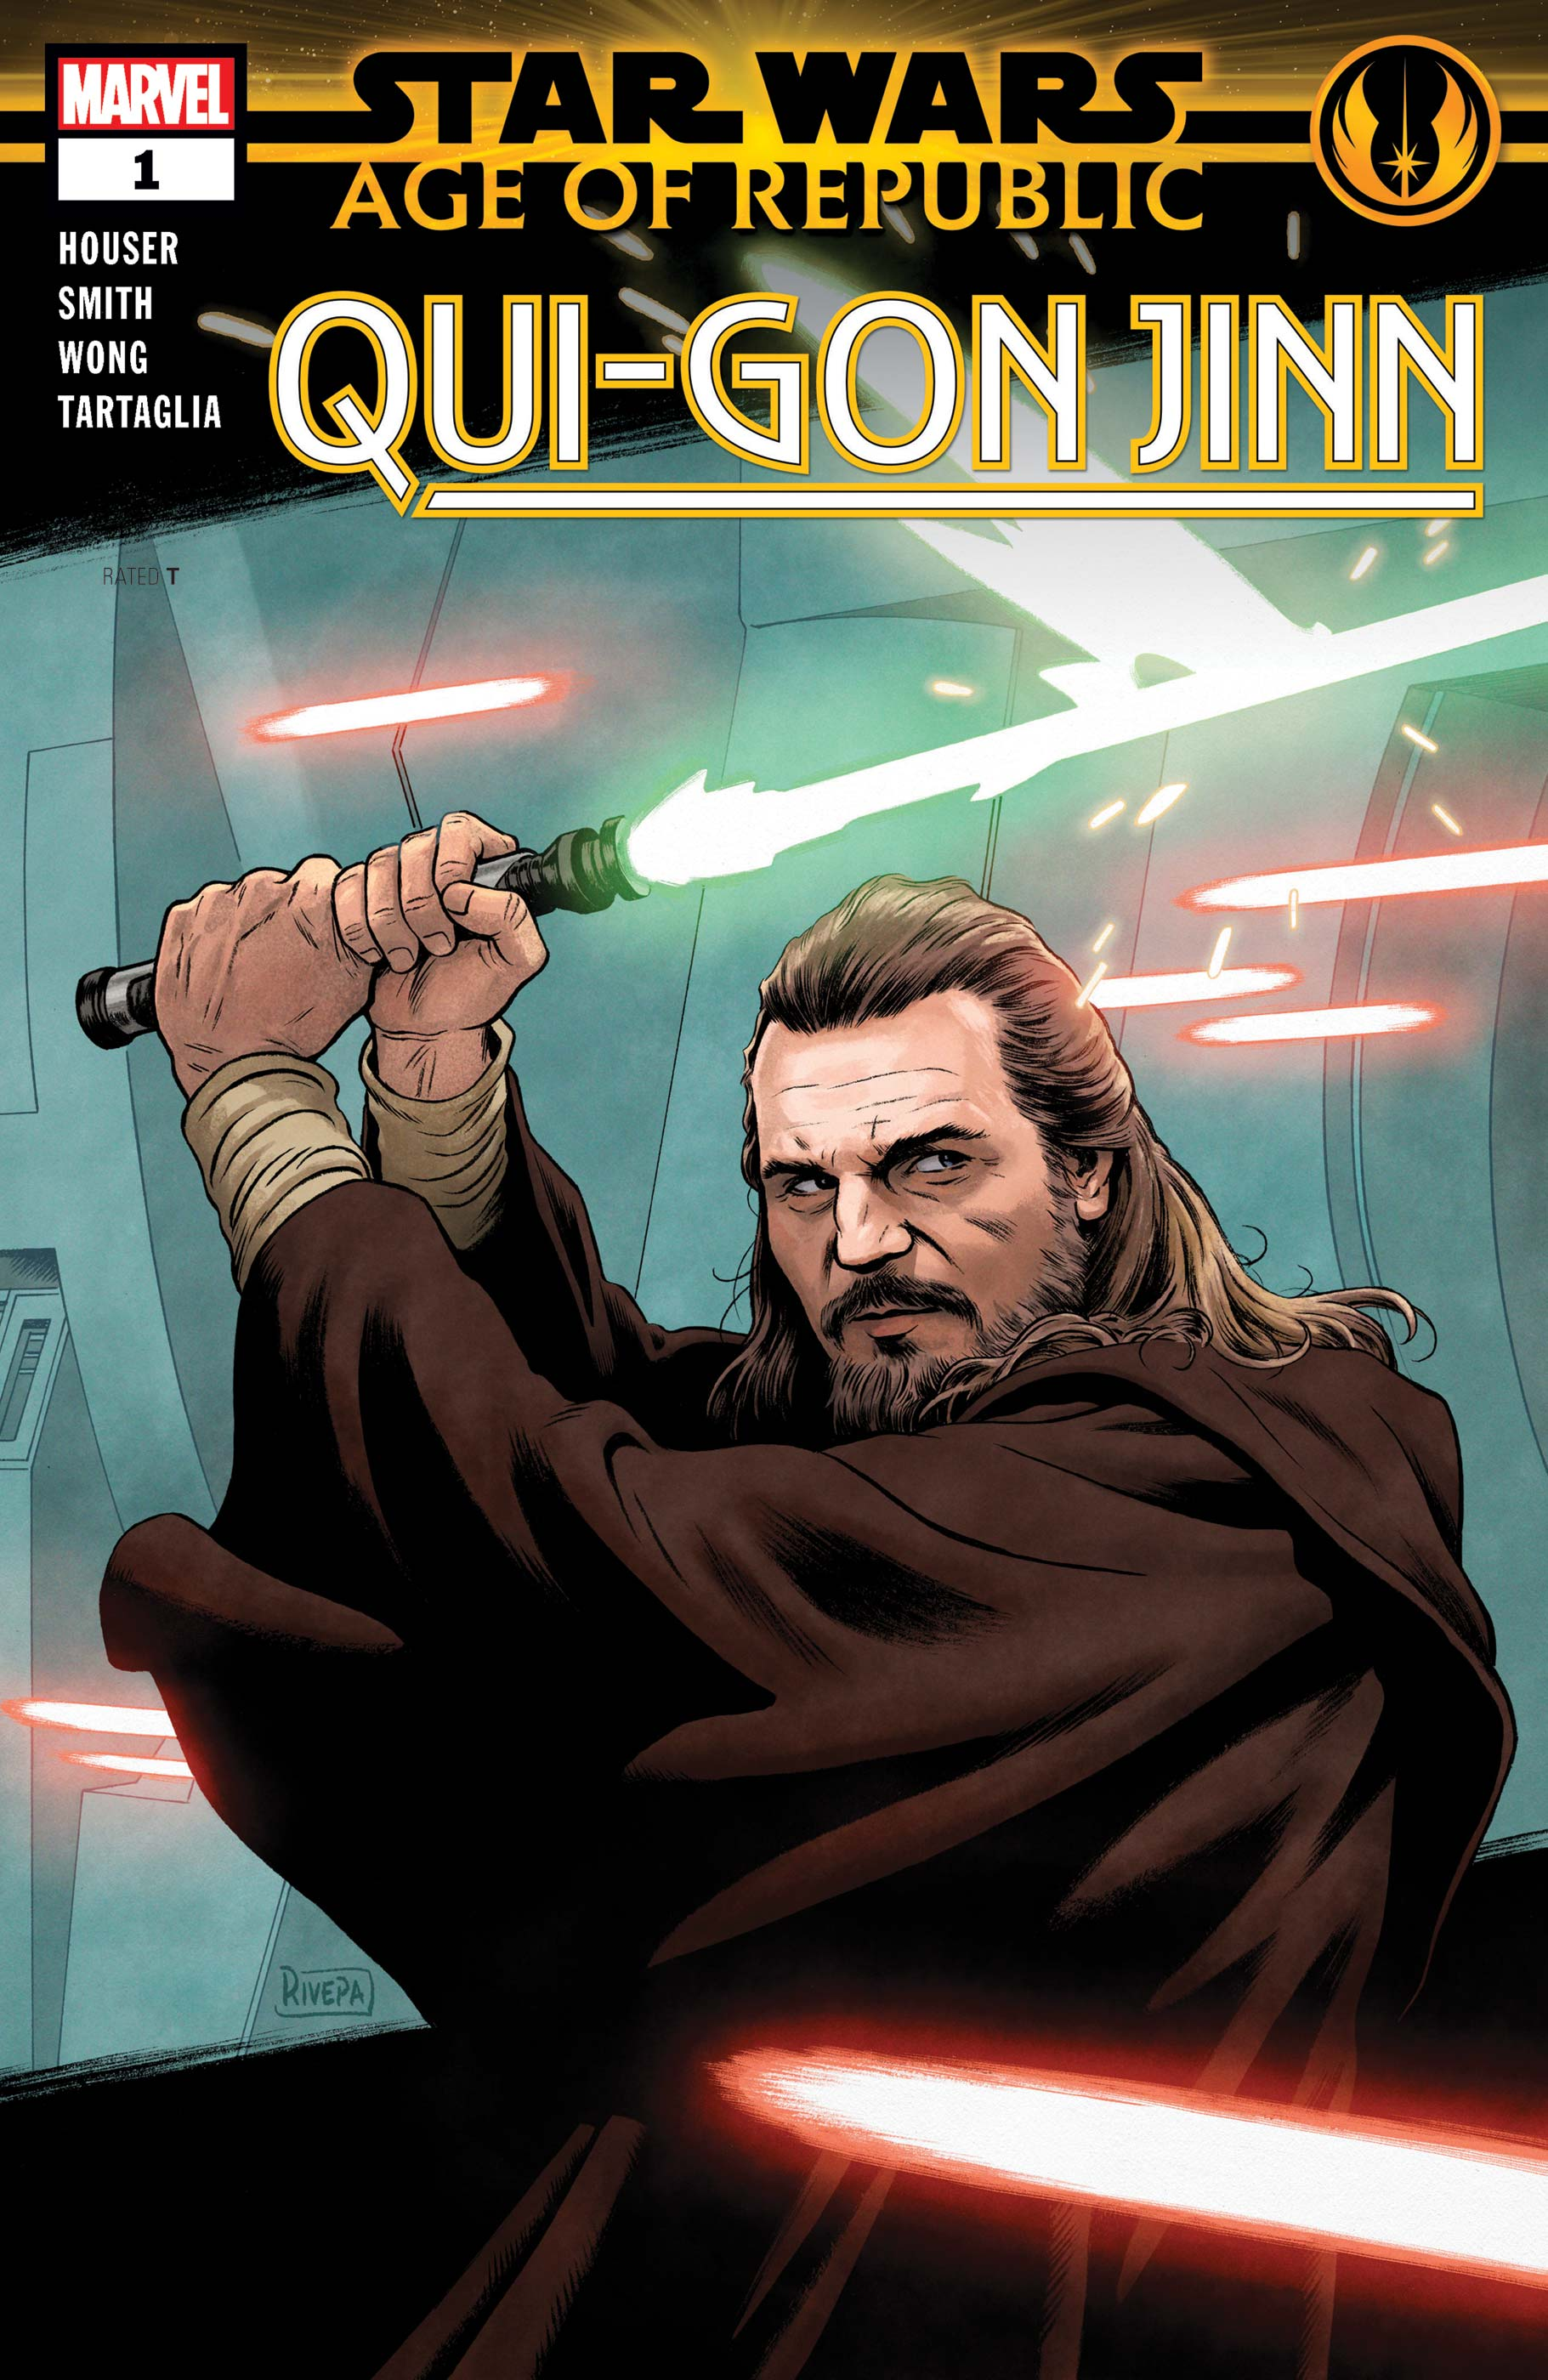 Star Wars: Age of Republic - Qui-Gon Jinn (2018) #1